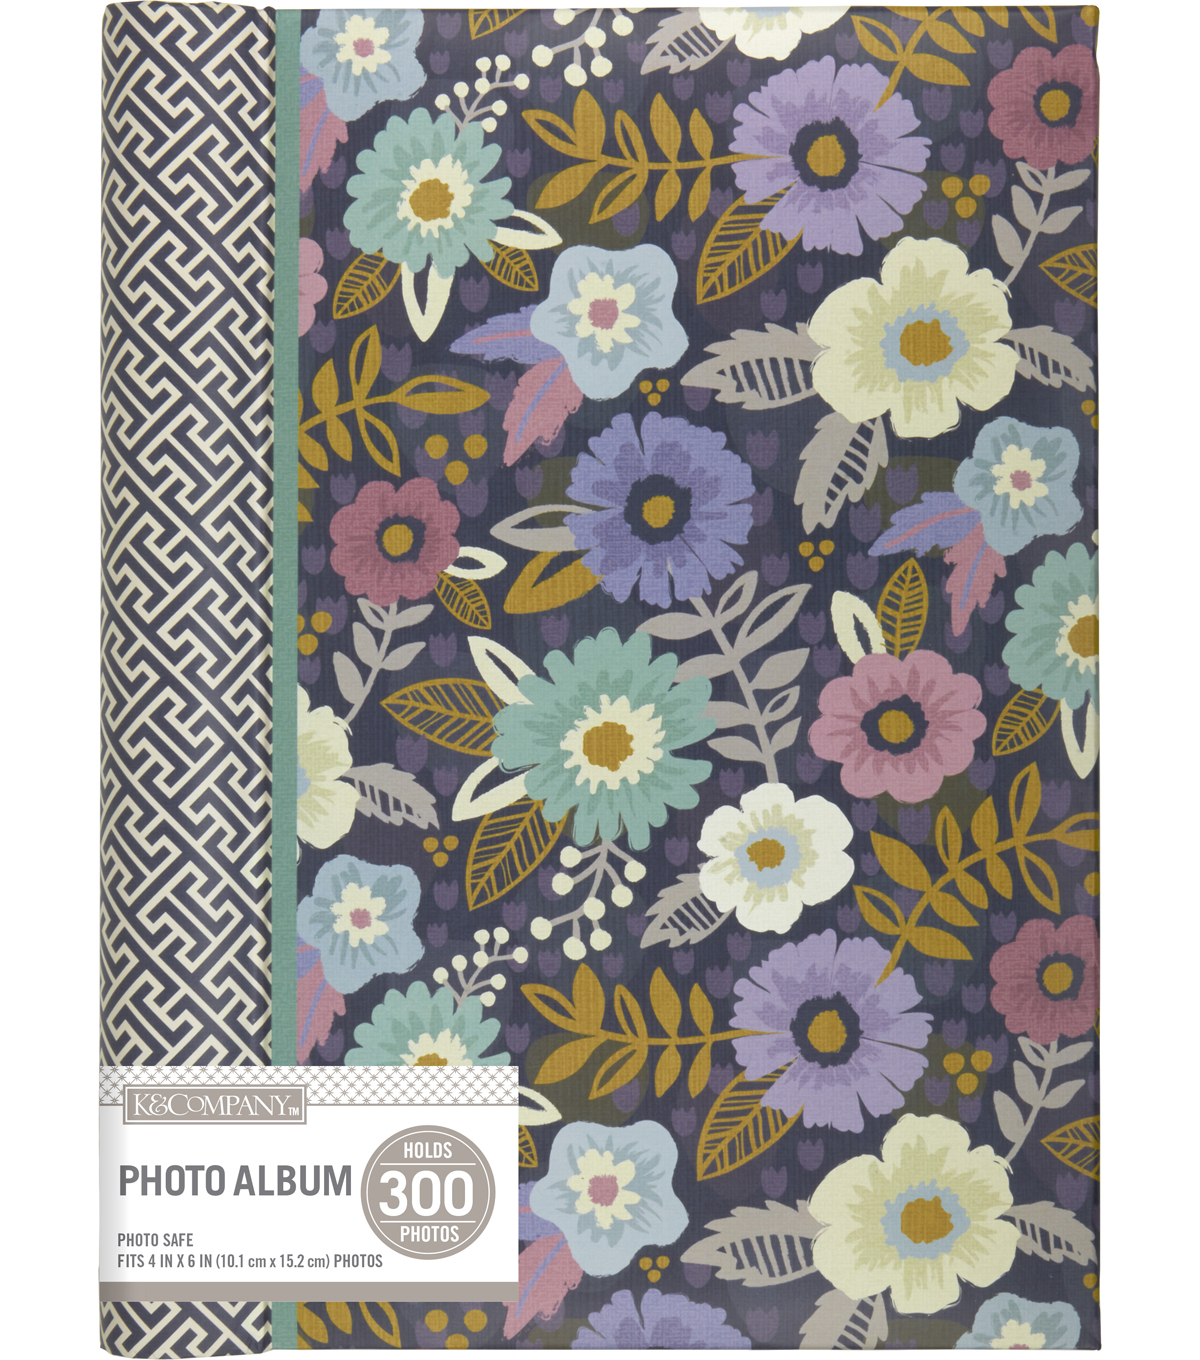 Kcompany Simple Floral 3 Up Spiral Memo Photo Album Joann